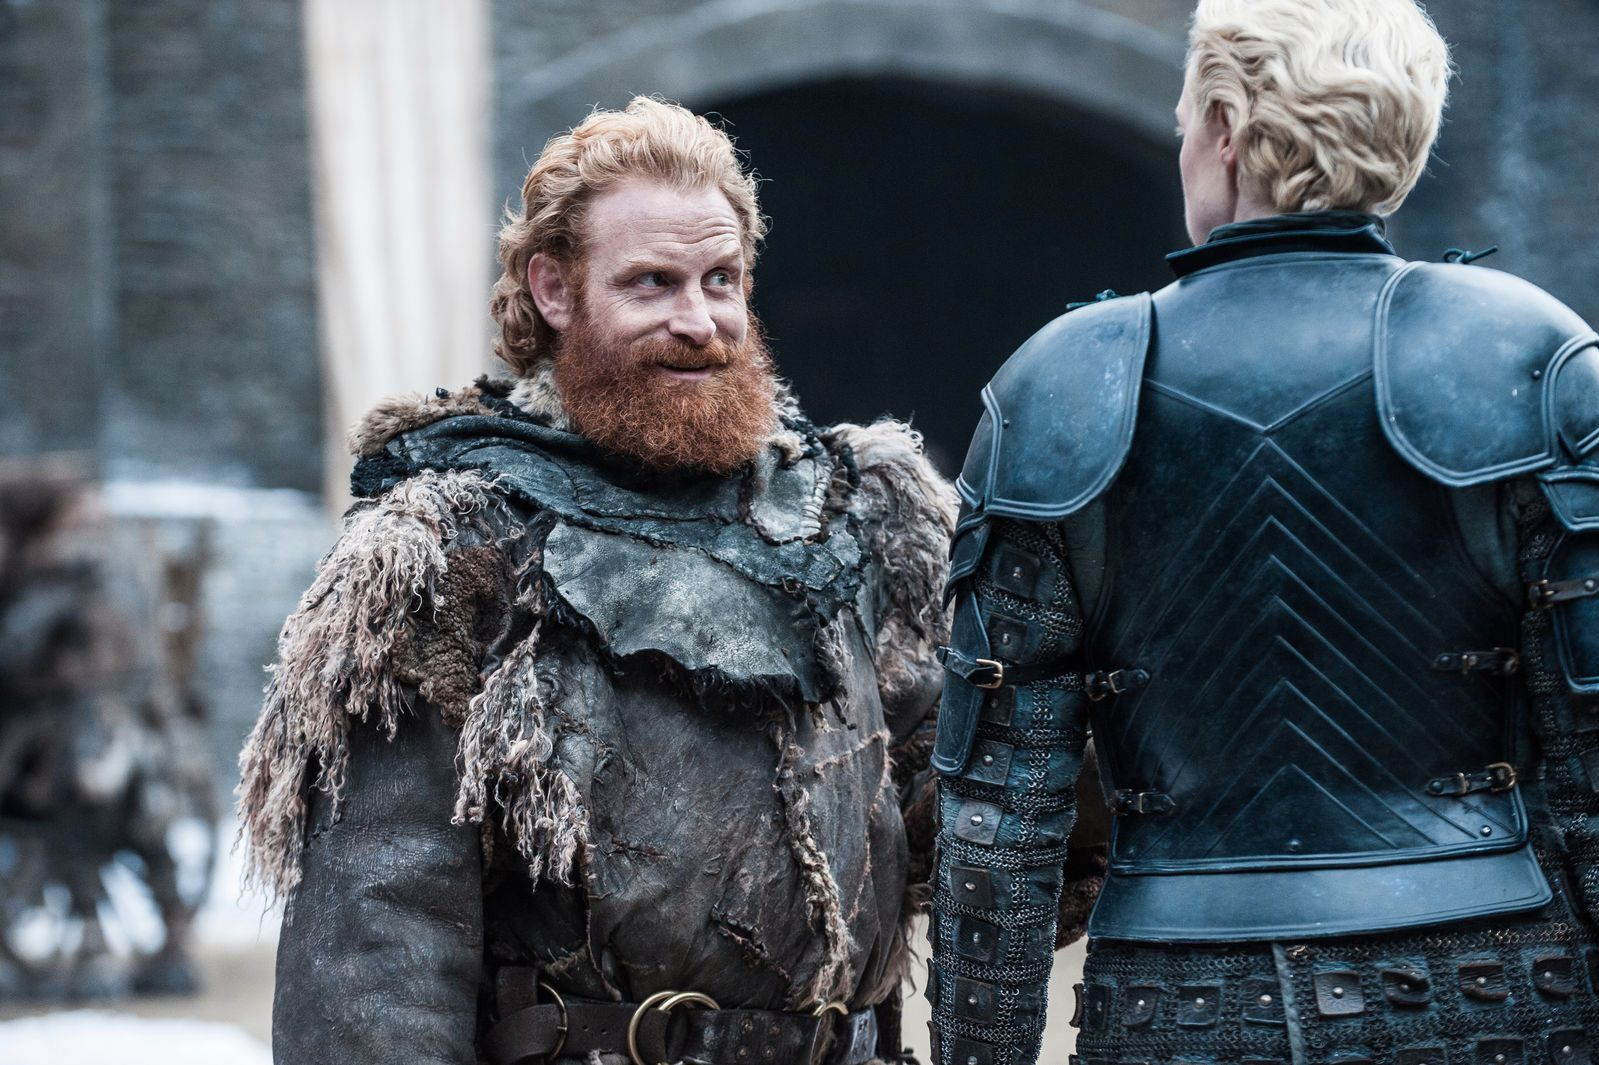 HIVJU ER MED: Kristofer Hivju som Tormund Giantsbane og Gwendoline Christie som Brienne of Tarth.